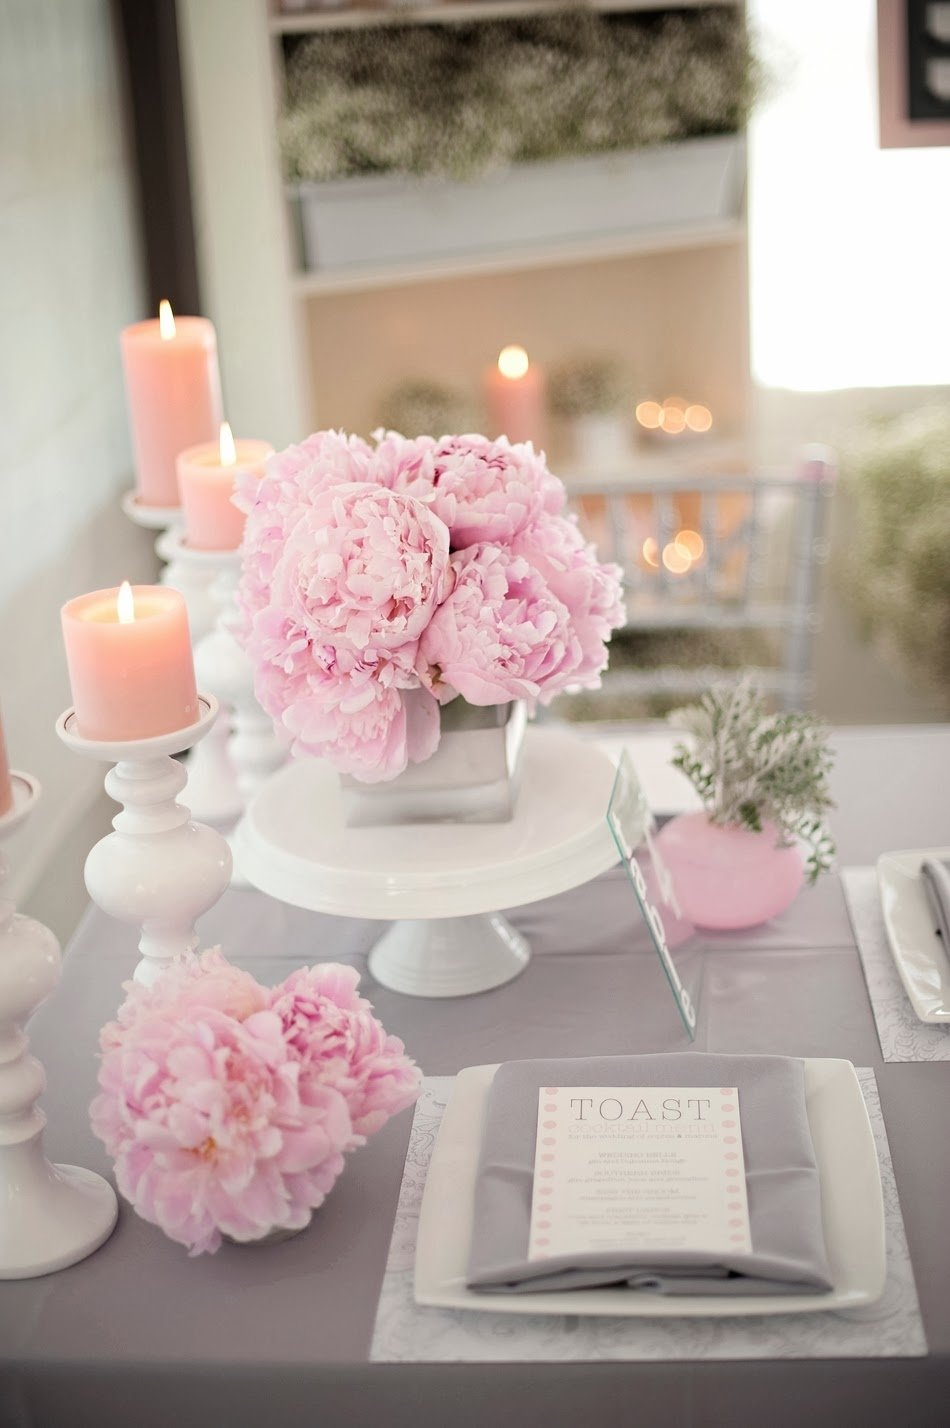 10 Stunning Pink And White Wedding Ideas pink and white wedding ideas wedding stuff ideas 2021